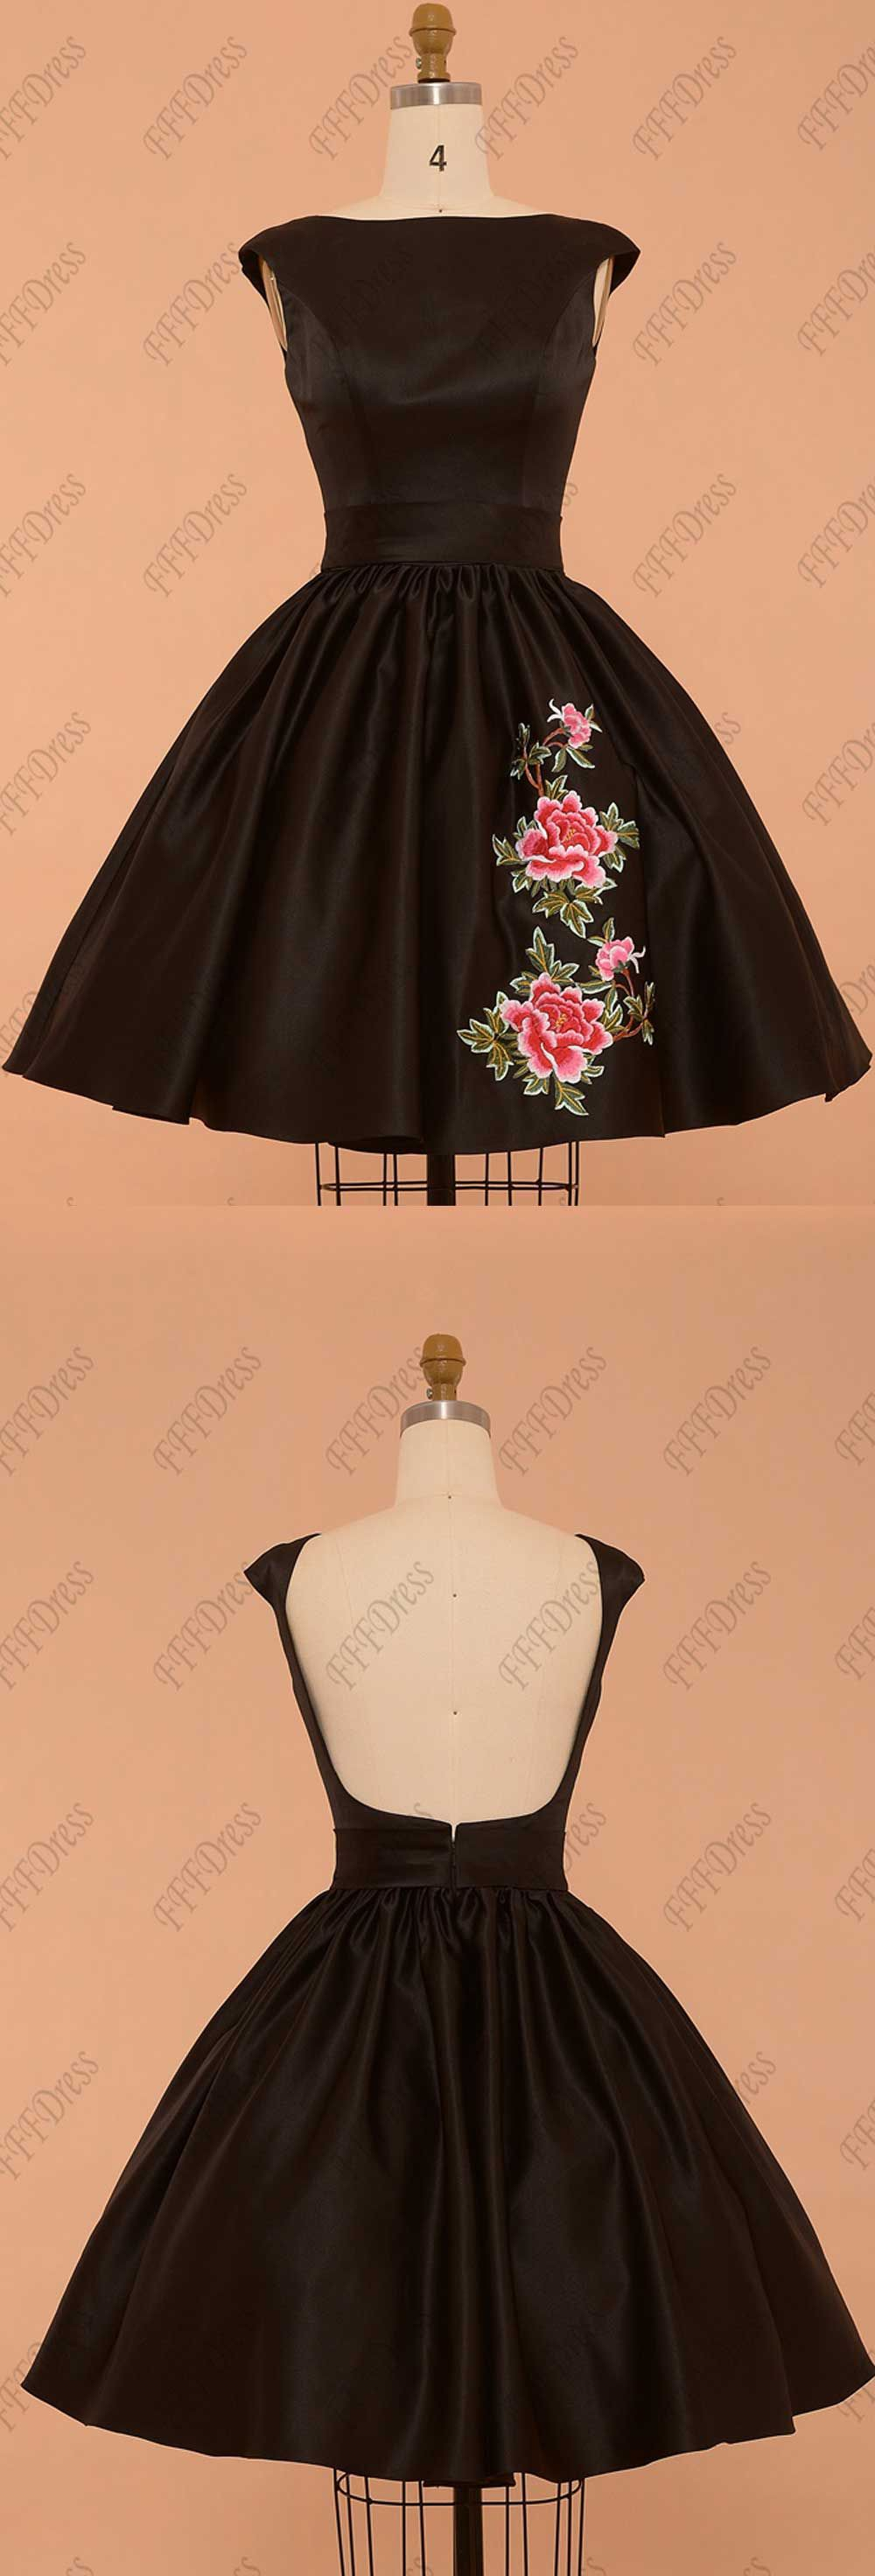 Black backless prom dresses short with embroidery short prom